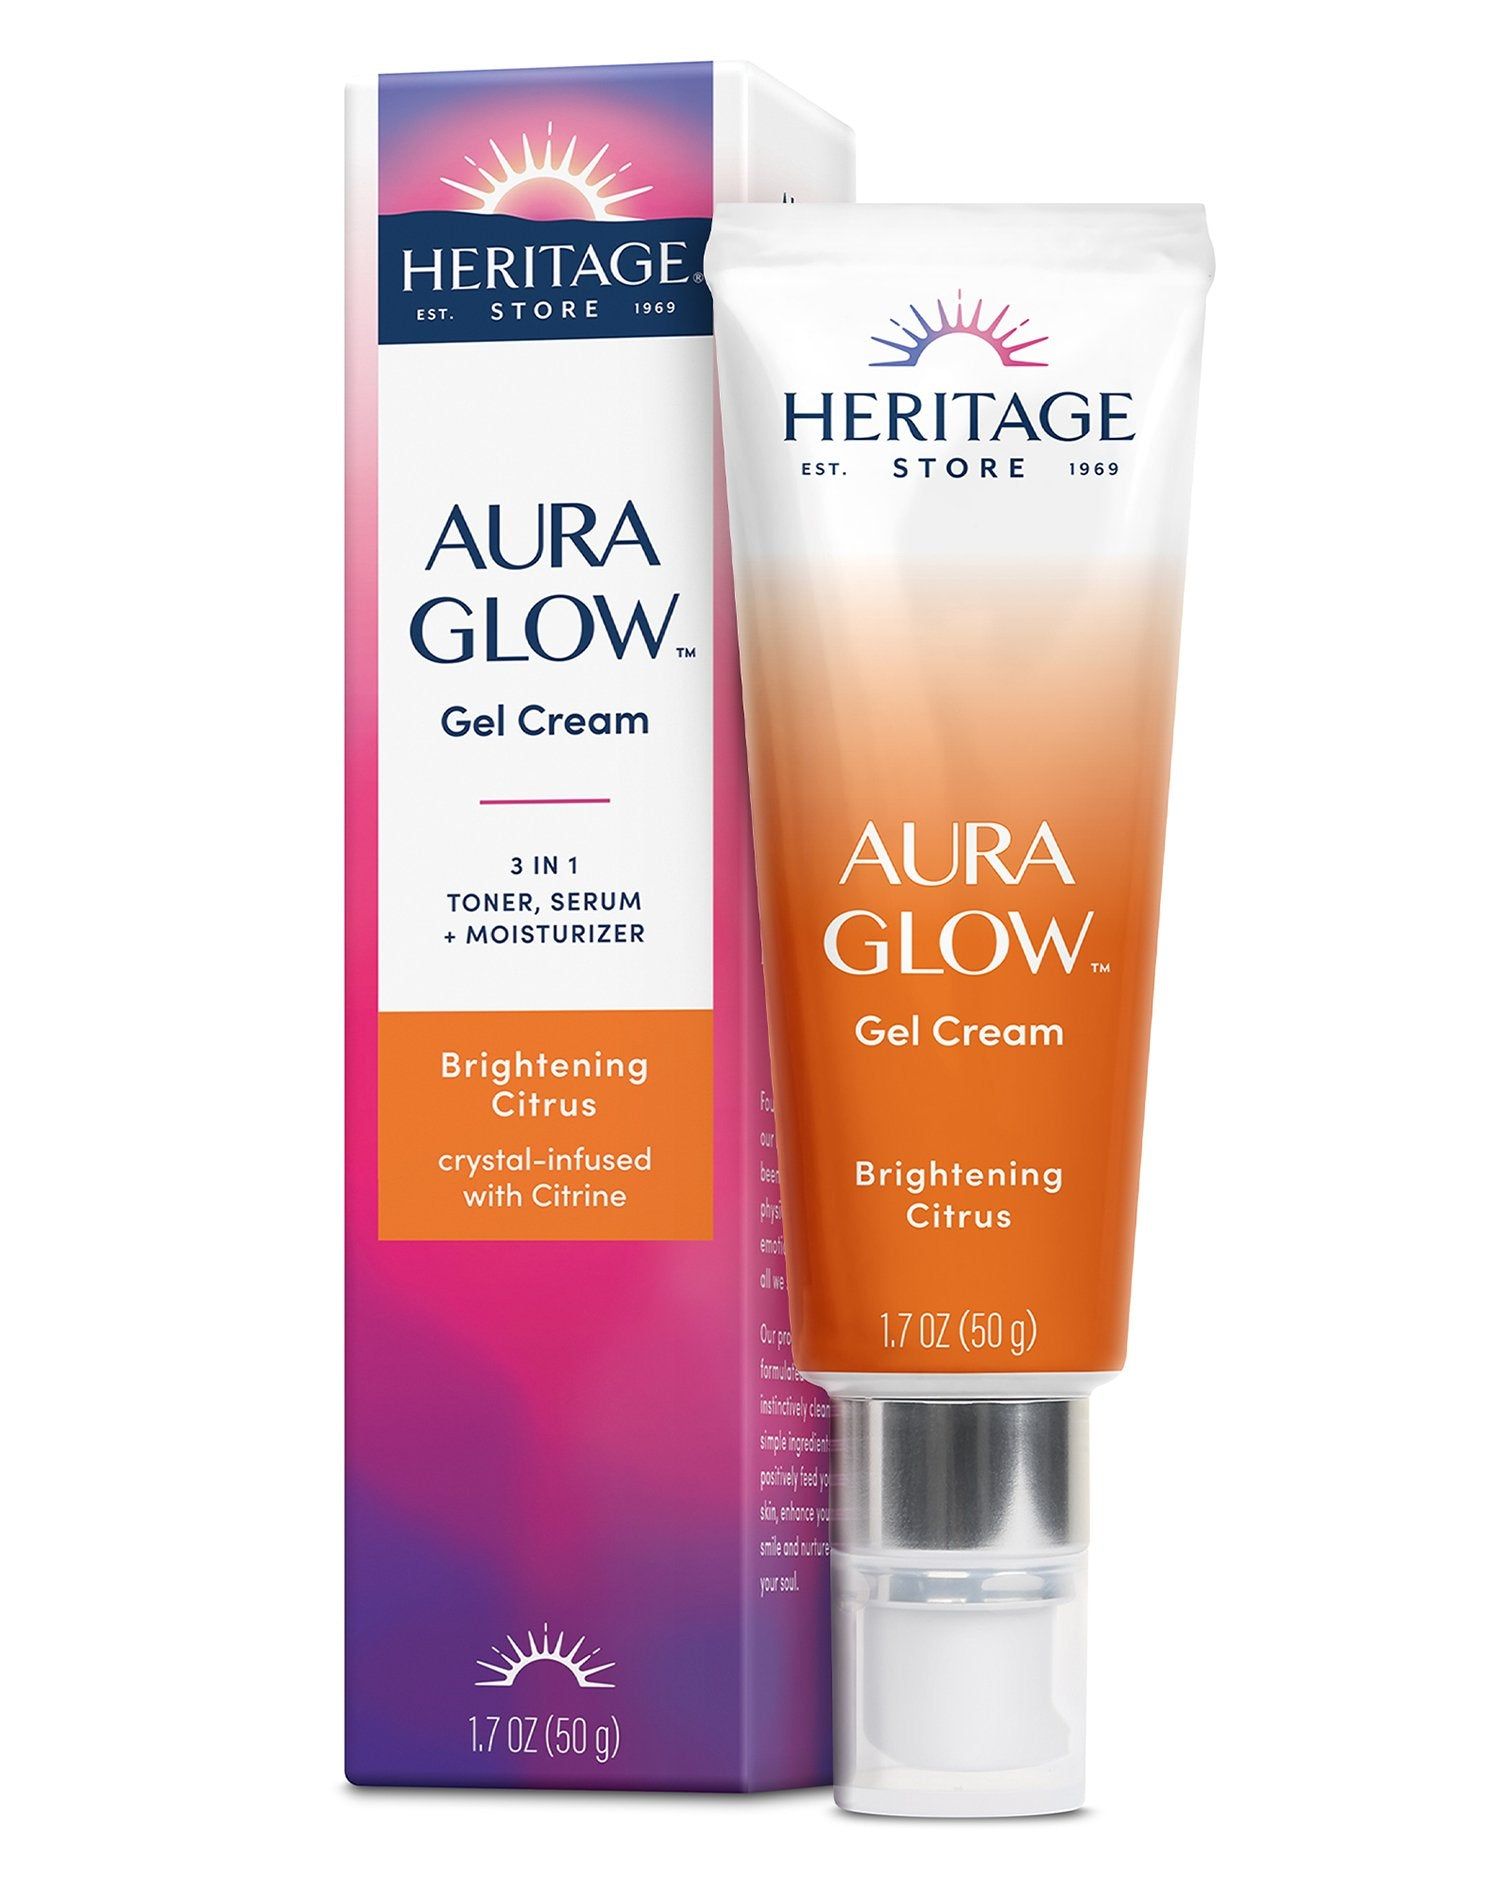 Aura Glow Gel Cream, Brightening Citrus